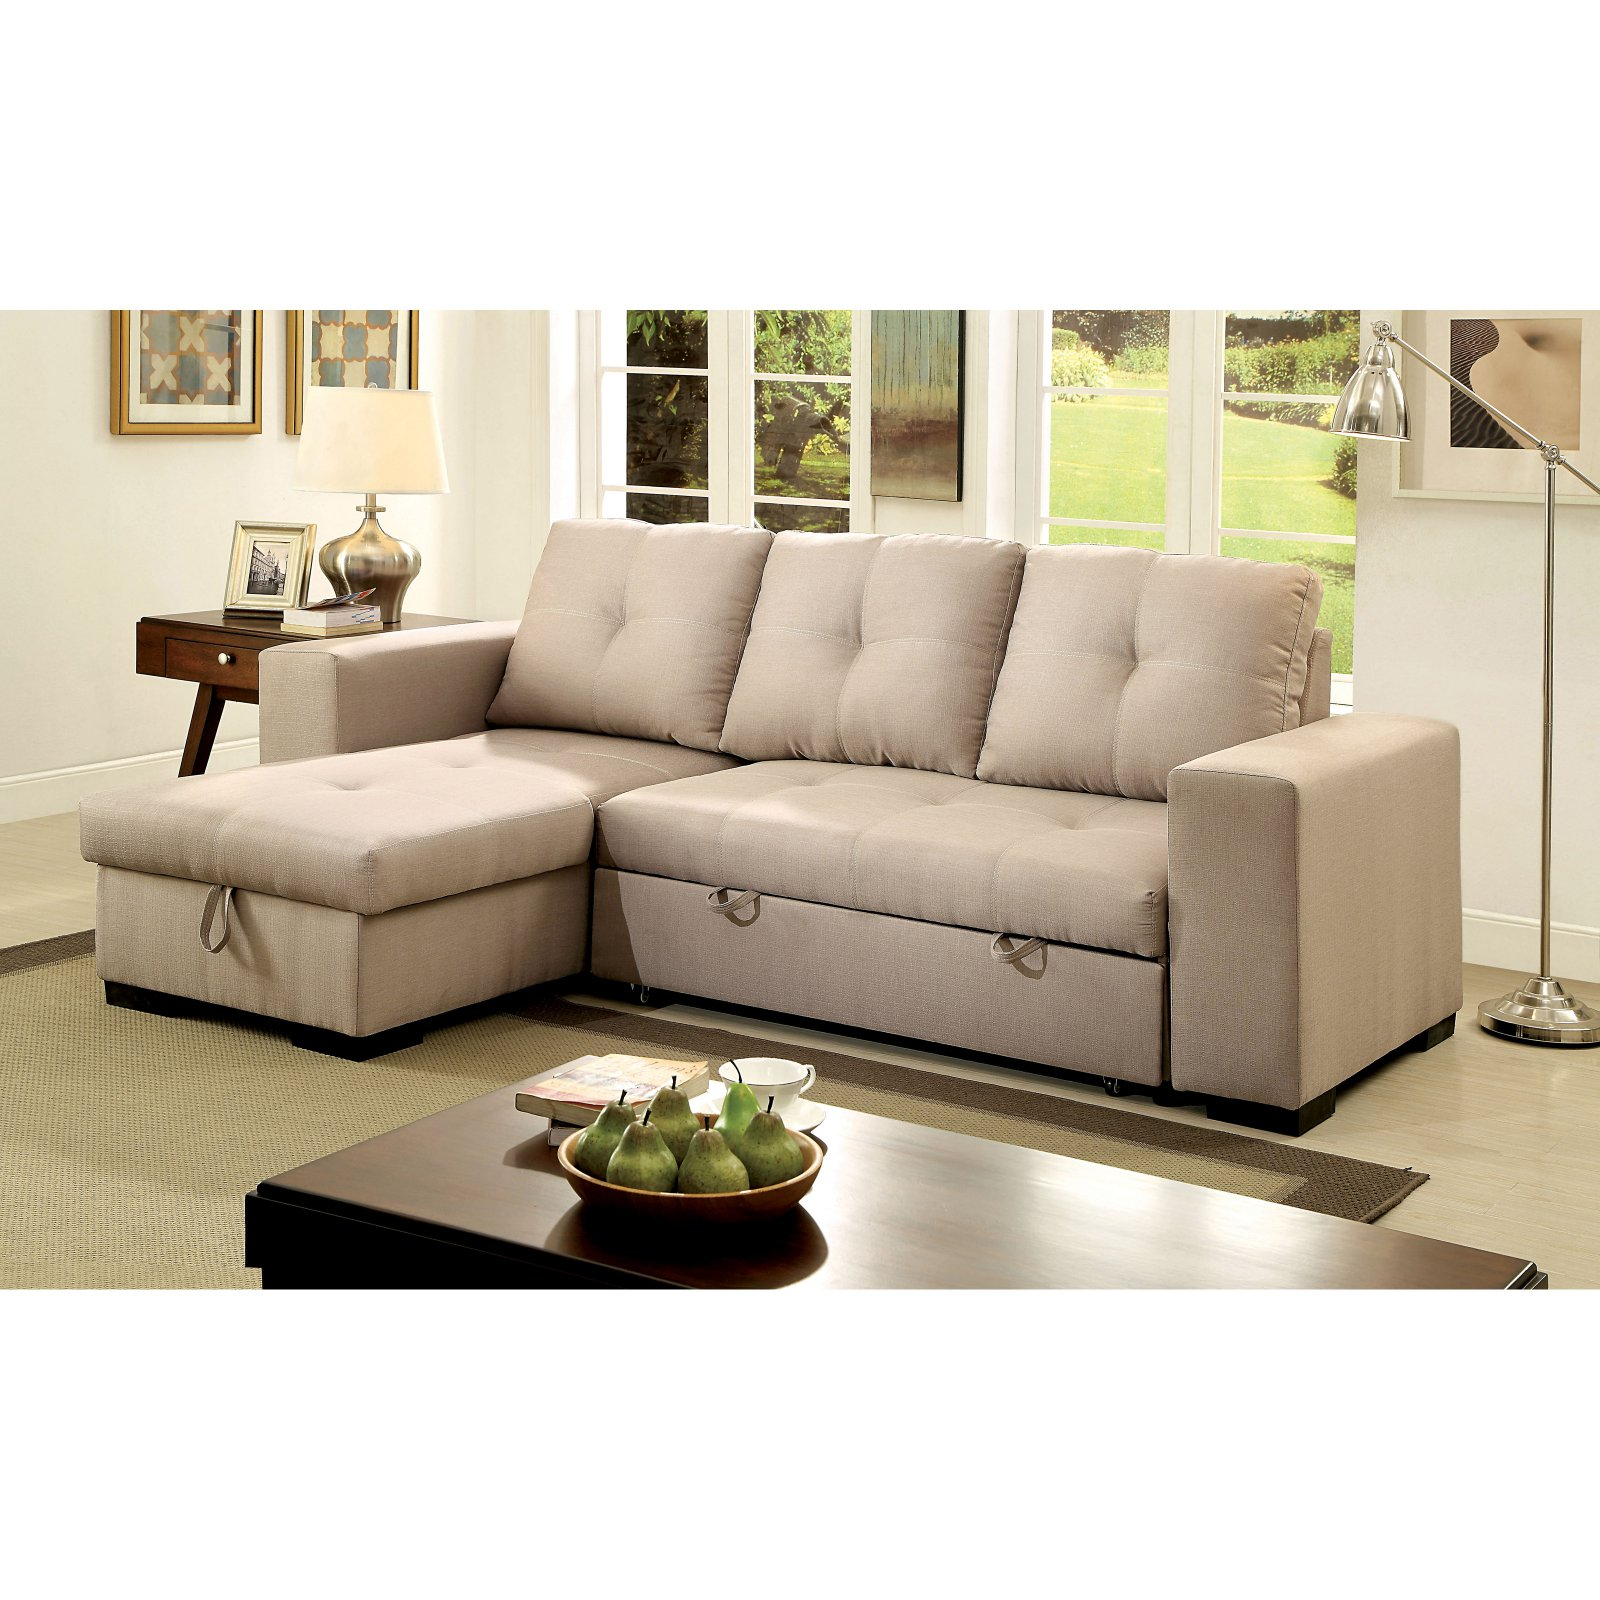 Furniture of America Rhea Sectional Sofa with Pull Out Sleeper